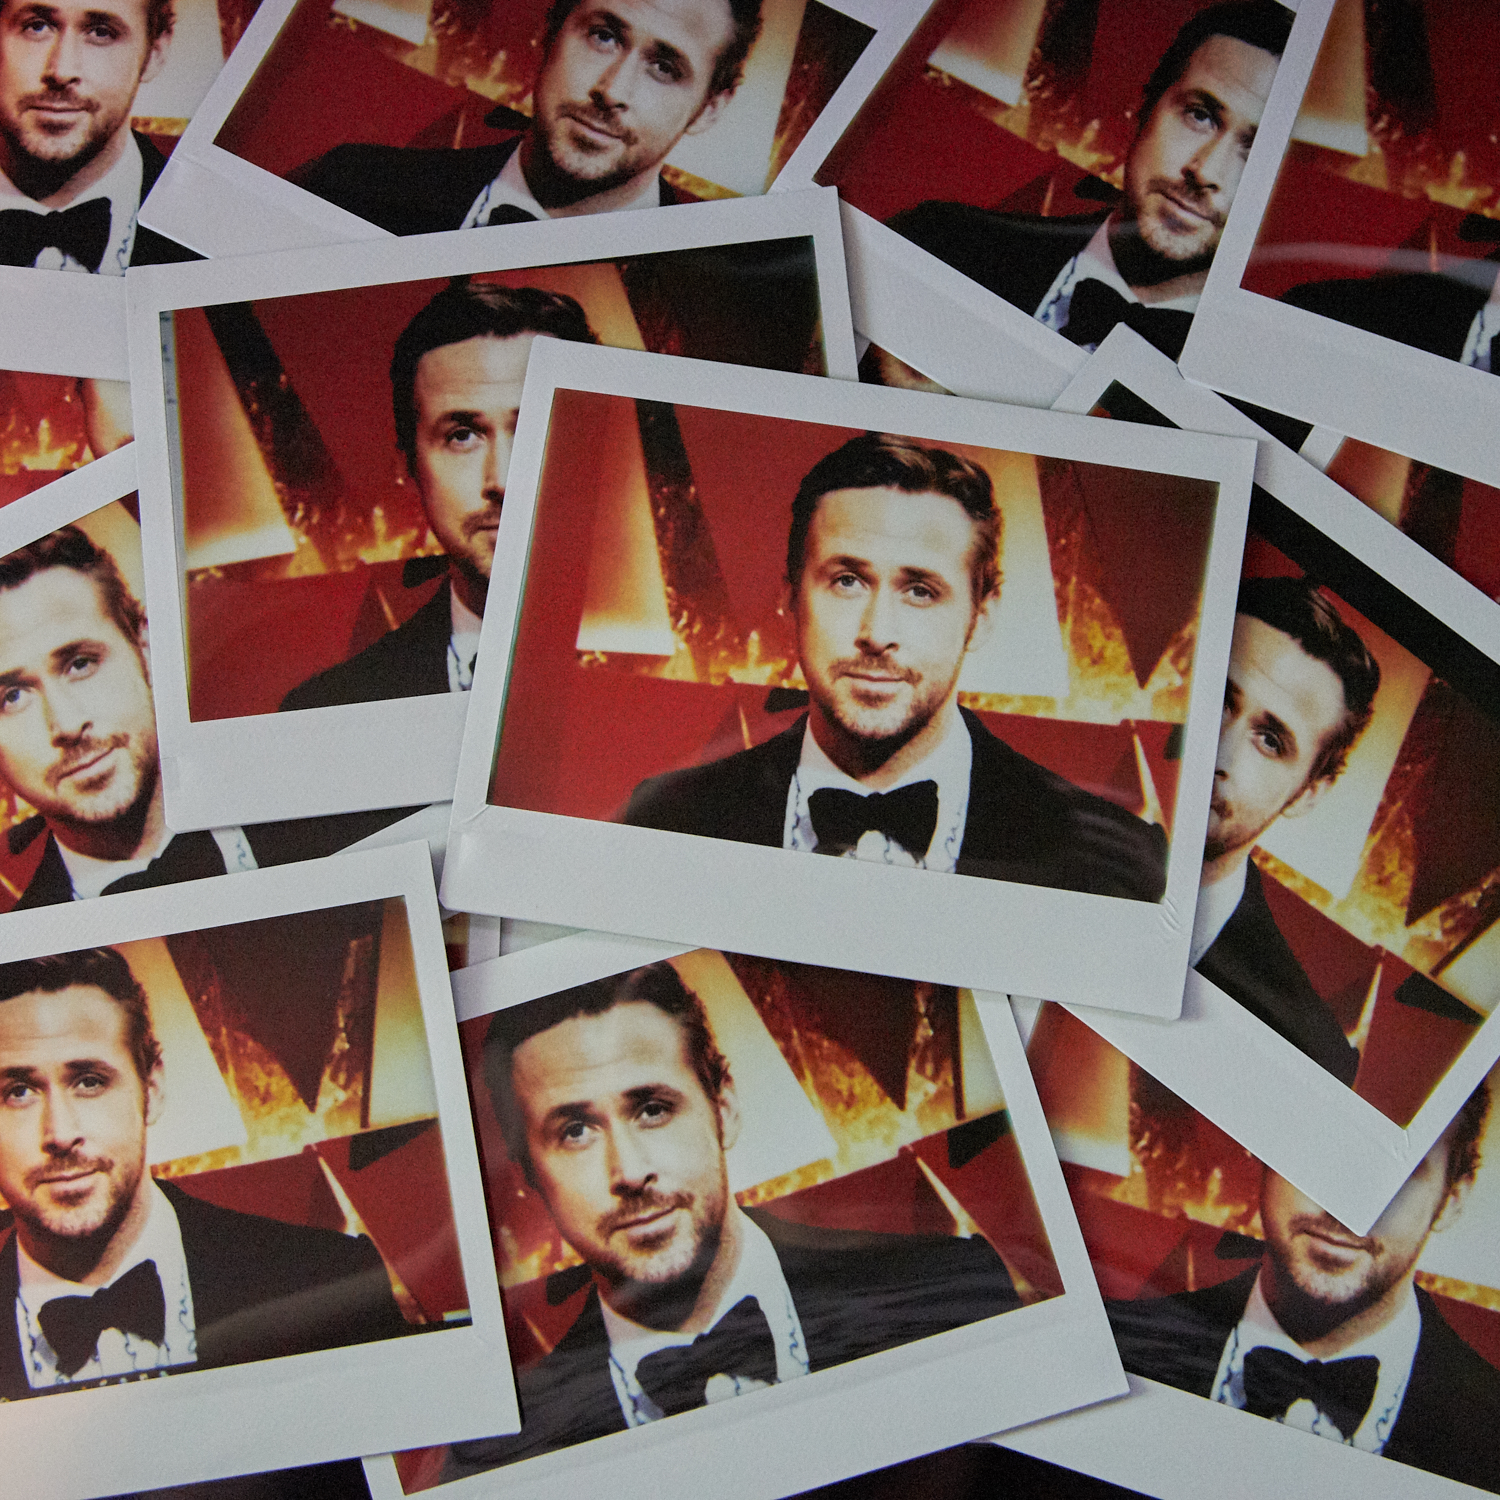 unlimited$3000 - Your entire eventPolaroids for up to 1000 guestsPerfect for corporate or open-house events with no exact head count